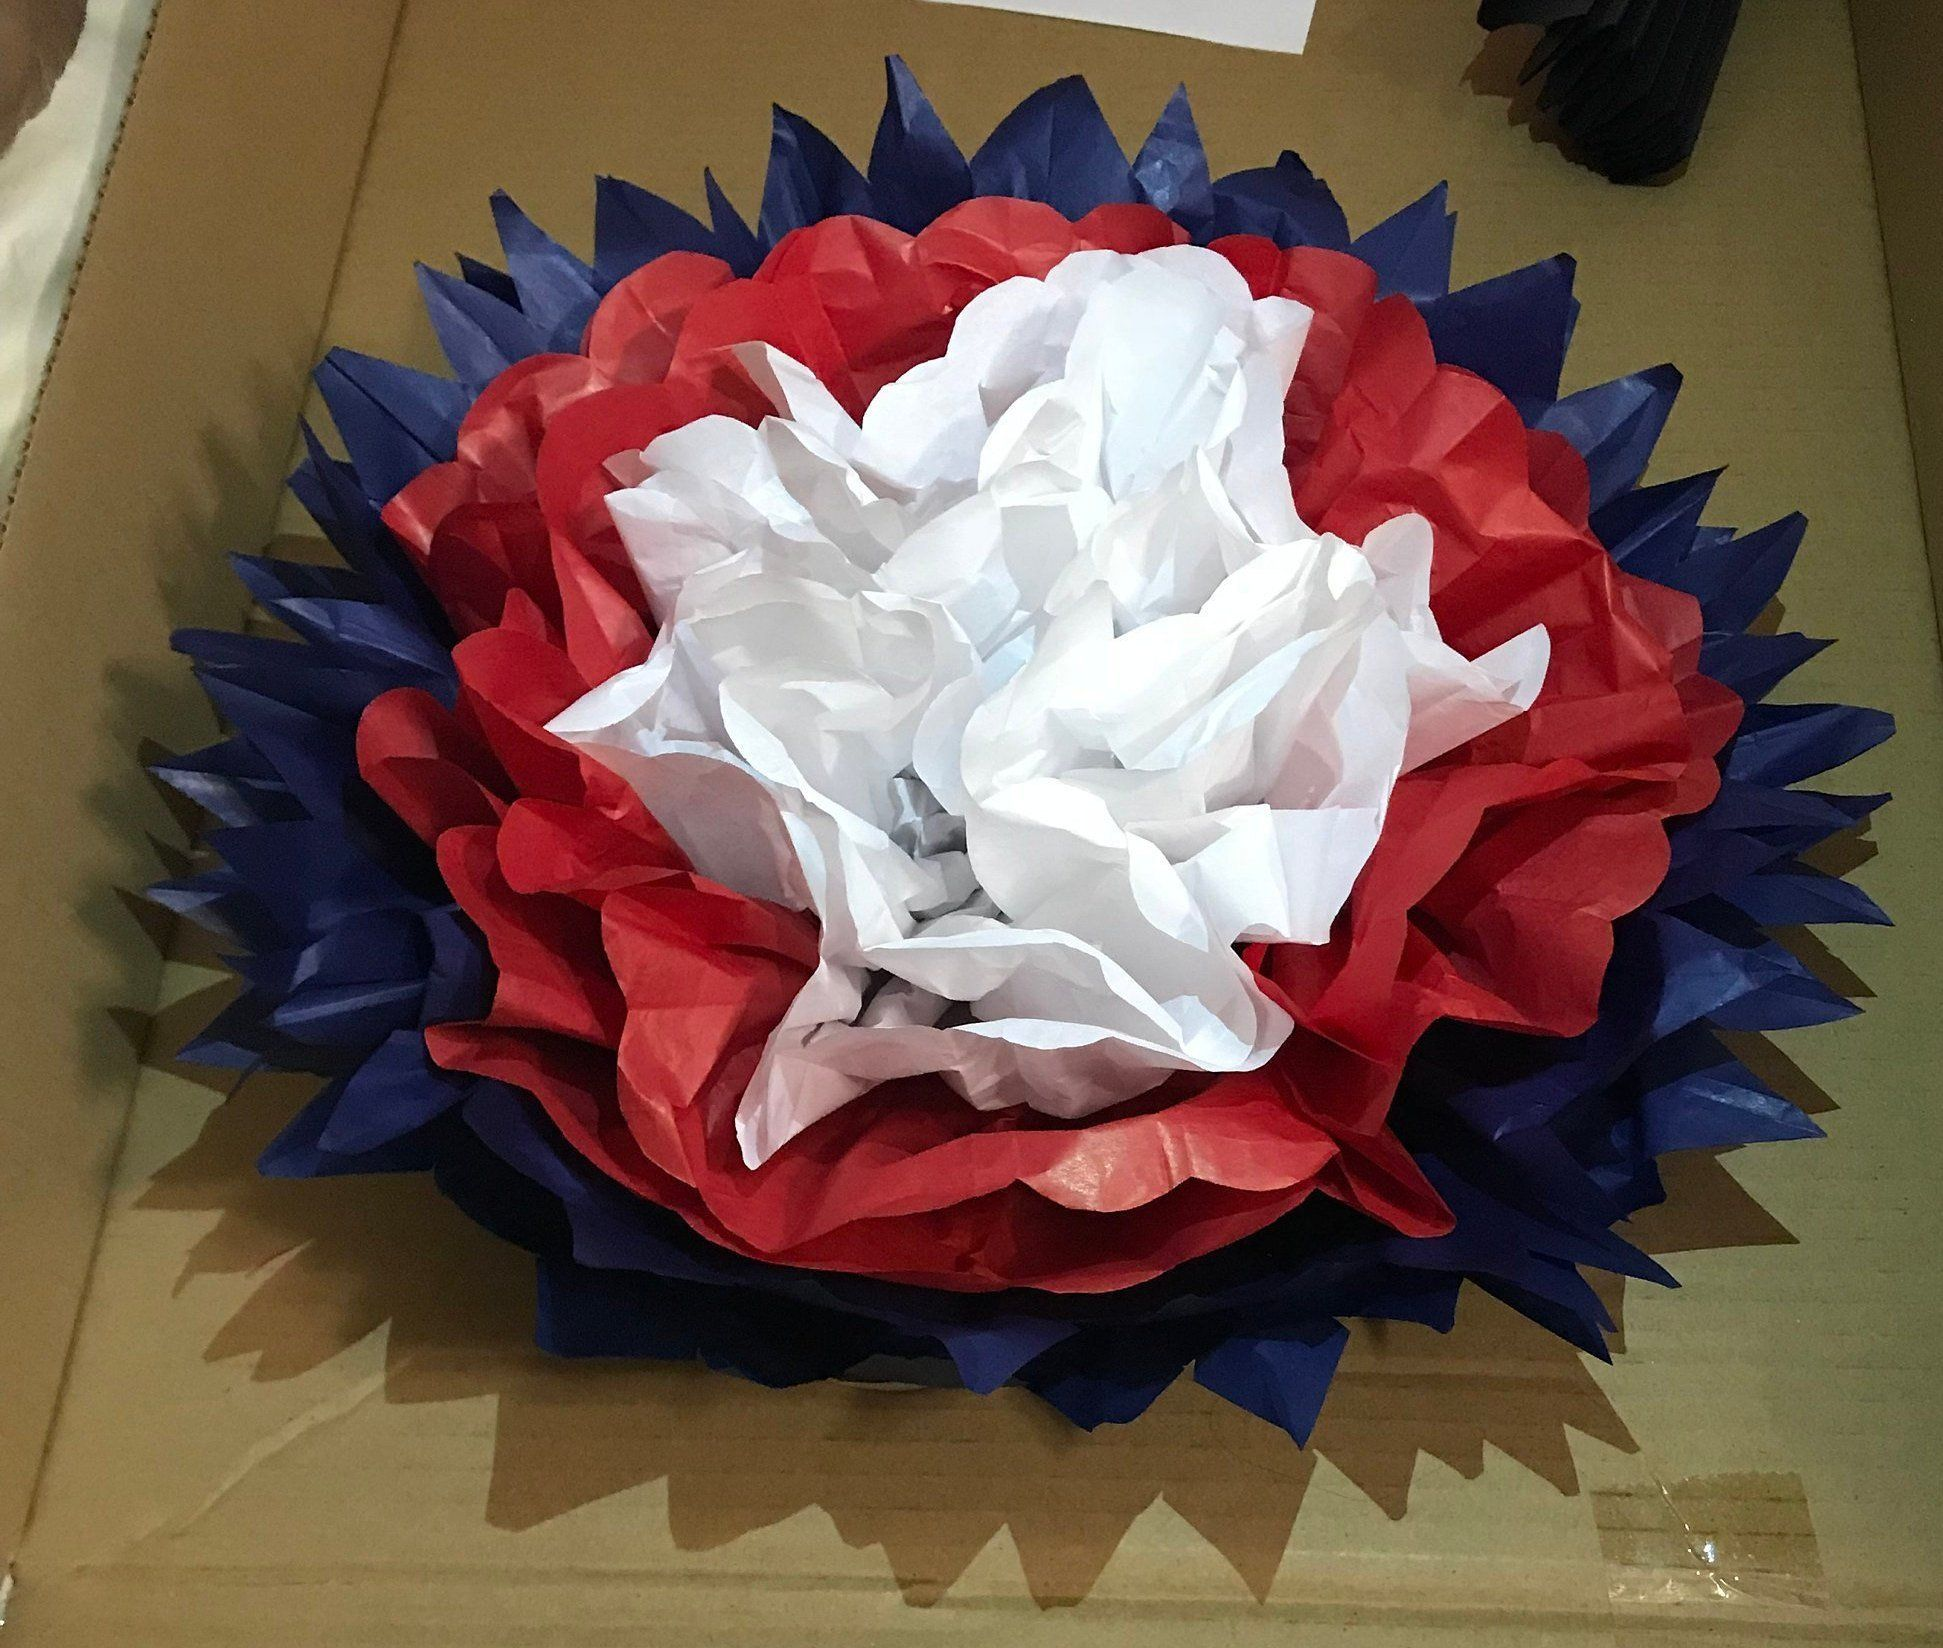 Red White & Blue Tissue Paper Flowers Veteran's Day Memorial Day 4th of July Pom Poms #veteransdaydecorations